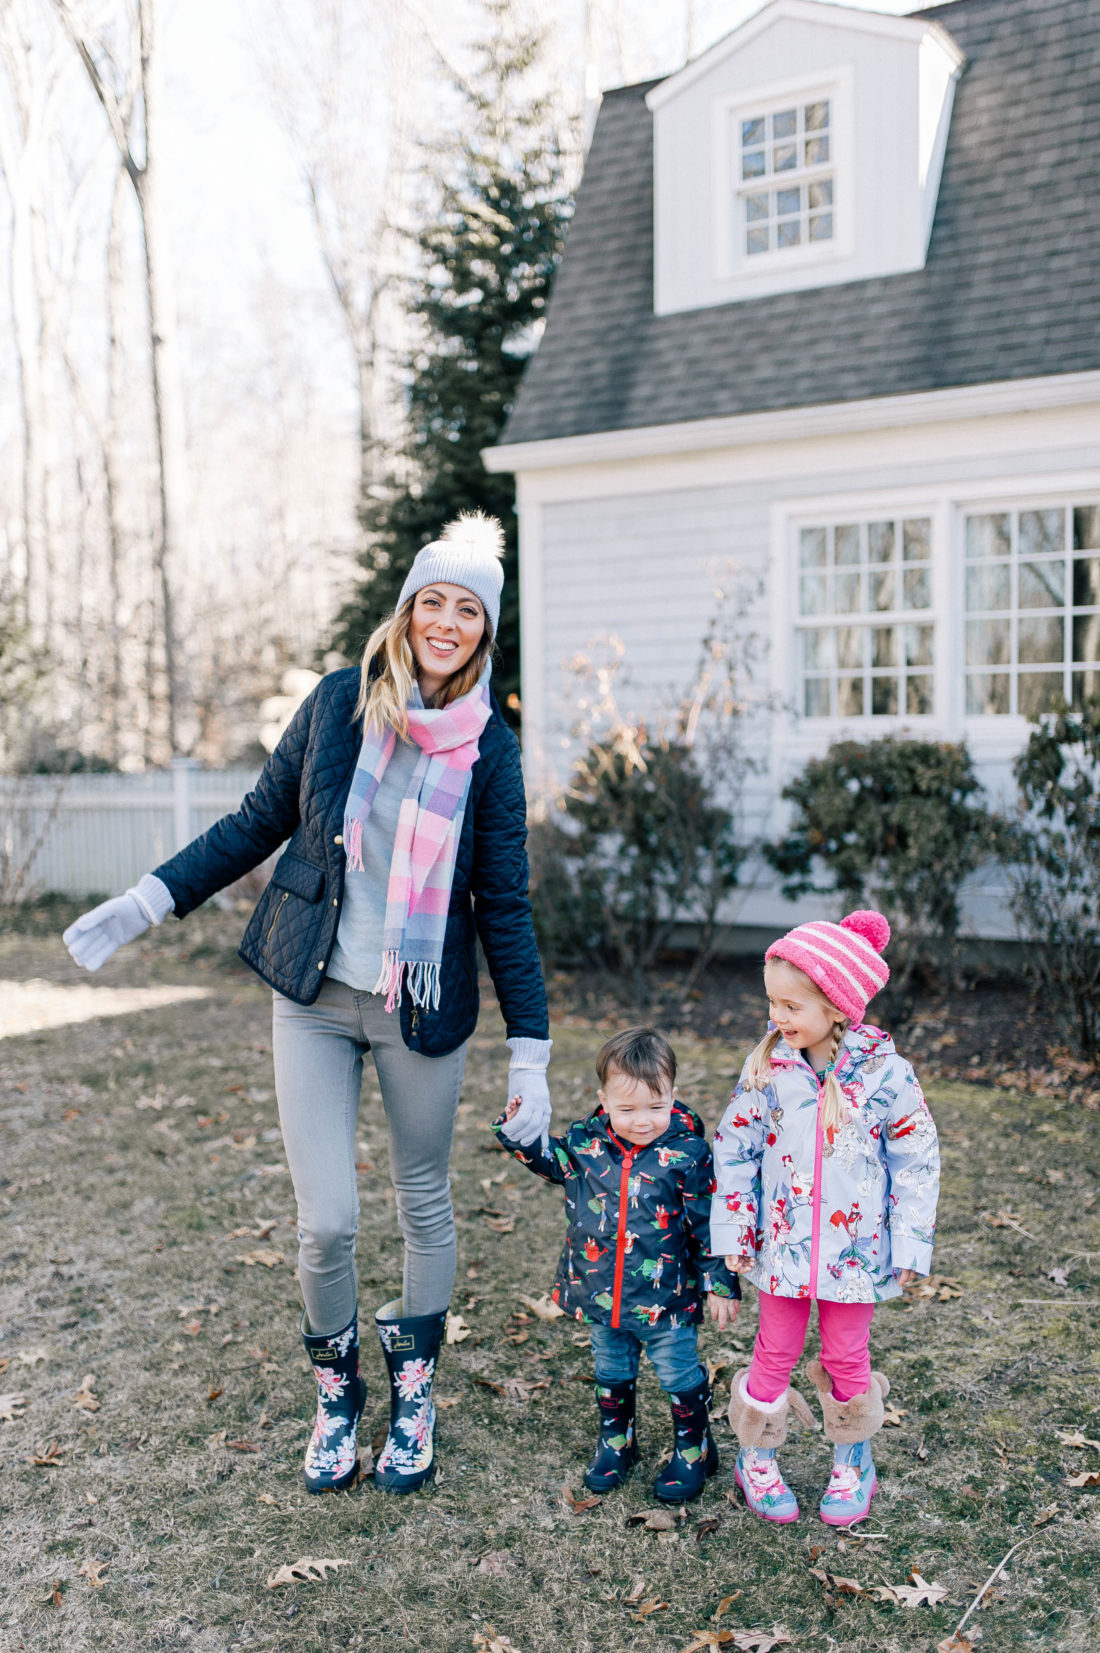 Eva Amurri Martino is bundled up in Peter Rabbit themed clothes with her two children playing outside of their connecticut home